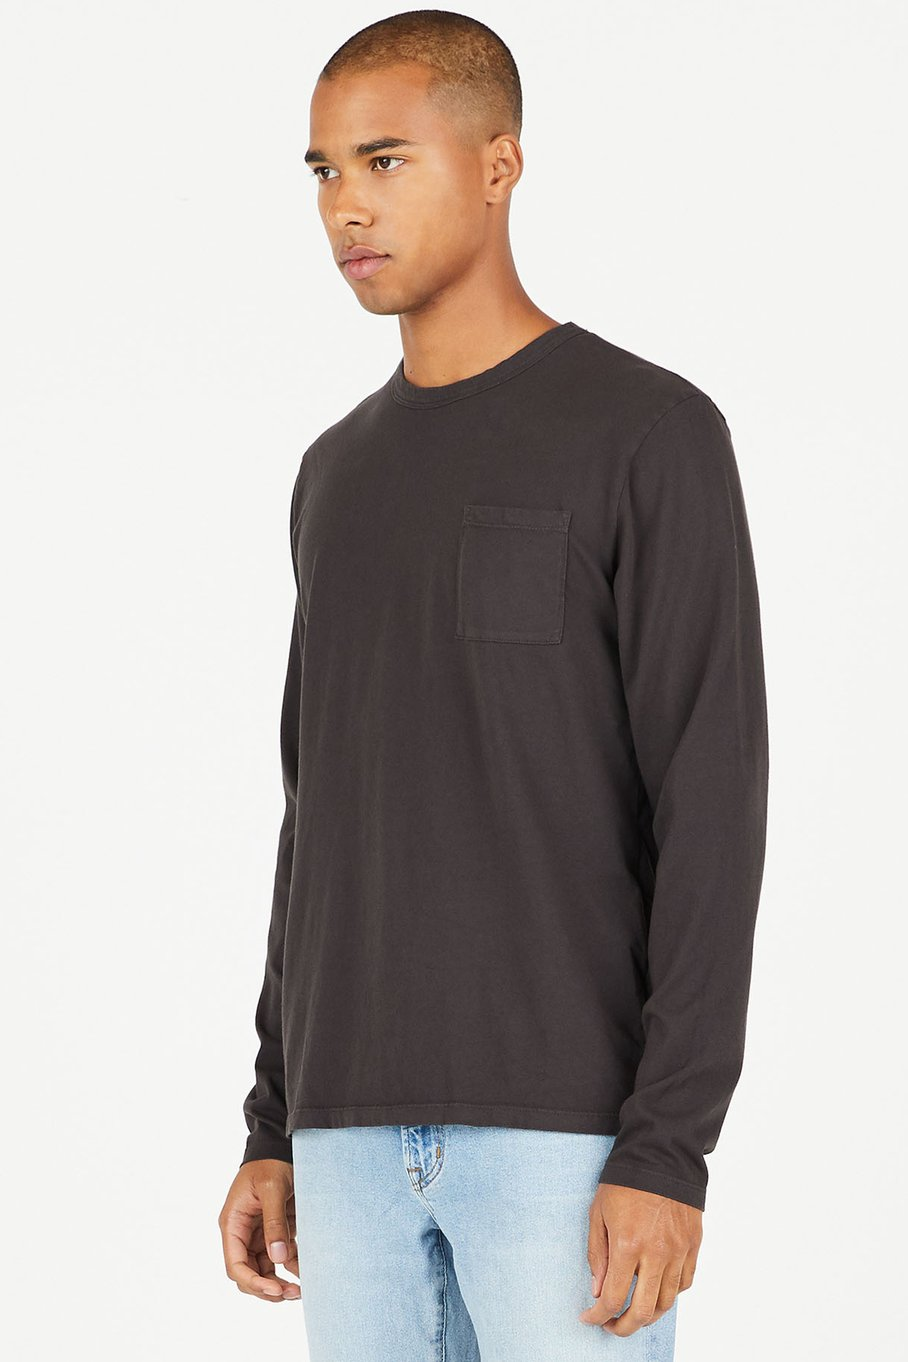 Cotton Citizen Men's Standard Pocket Shirt in Slate